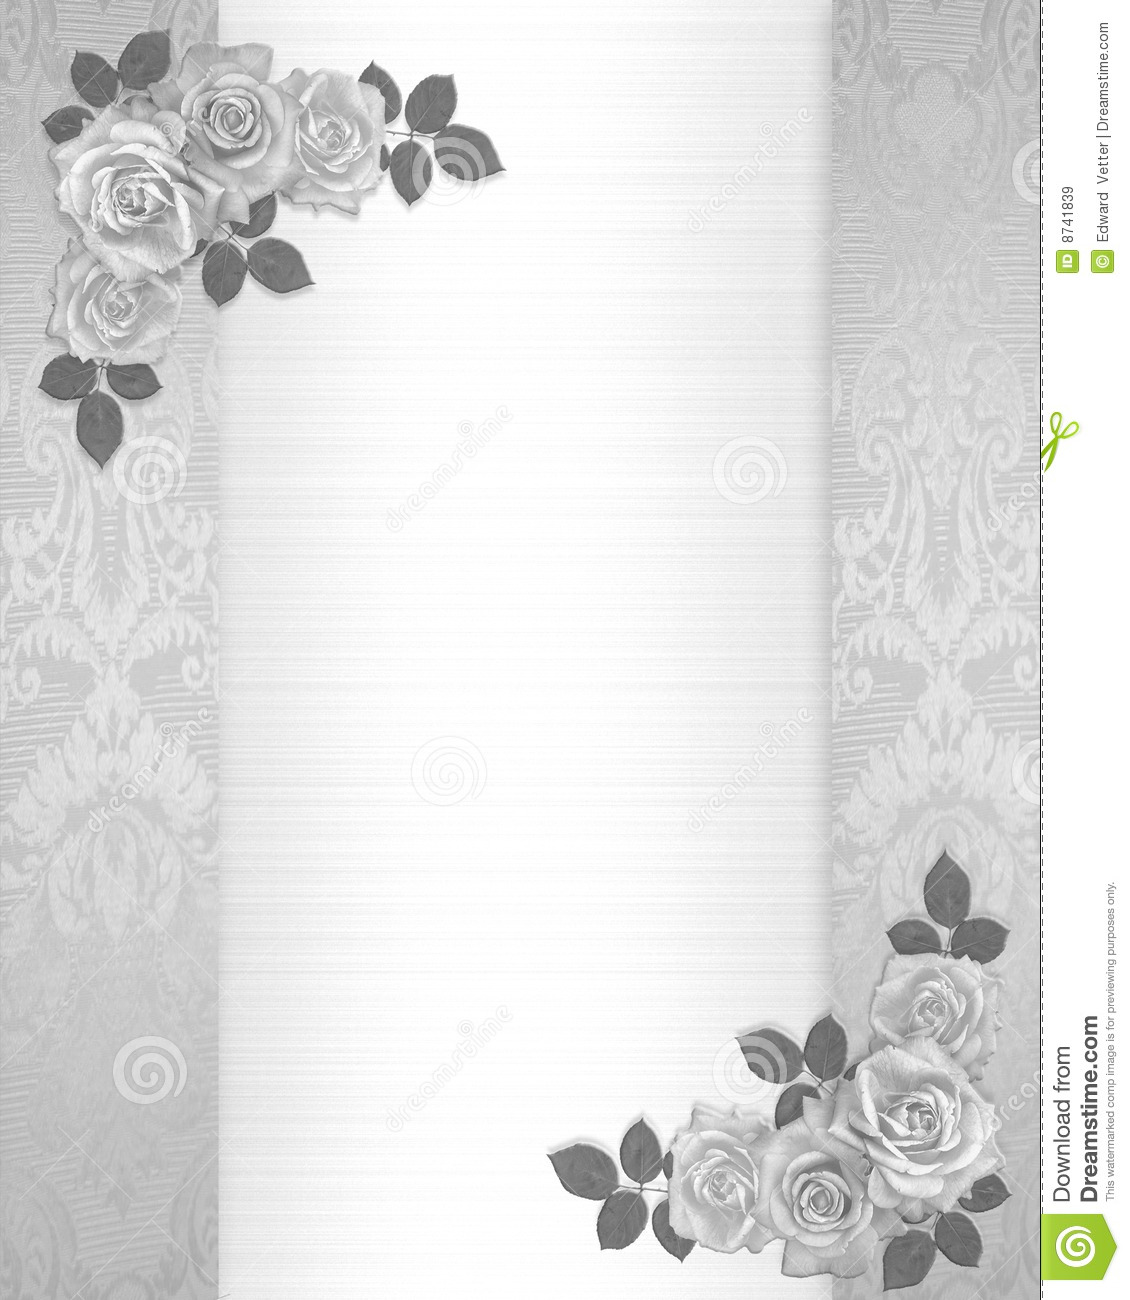 wedding invitation roses floral border royalty free stock